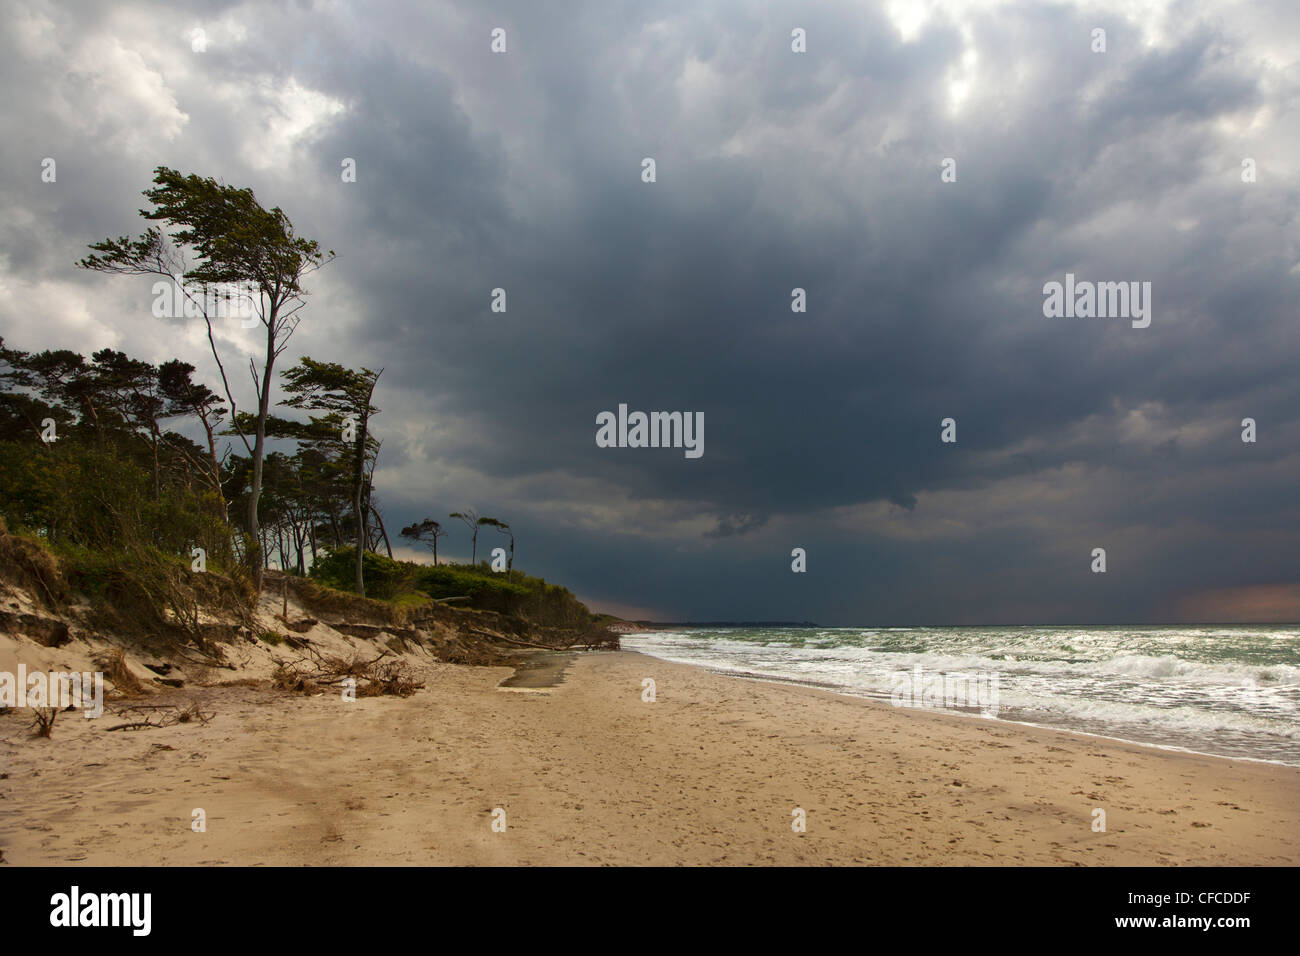 Thunderclouds over Darss west beach, Fischland-Darss-Zingst, Baltic Sea, Mecklenburg-West Pomerania, Germany - Stock Image